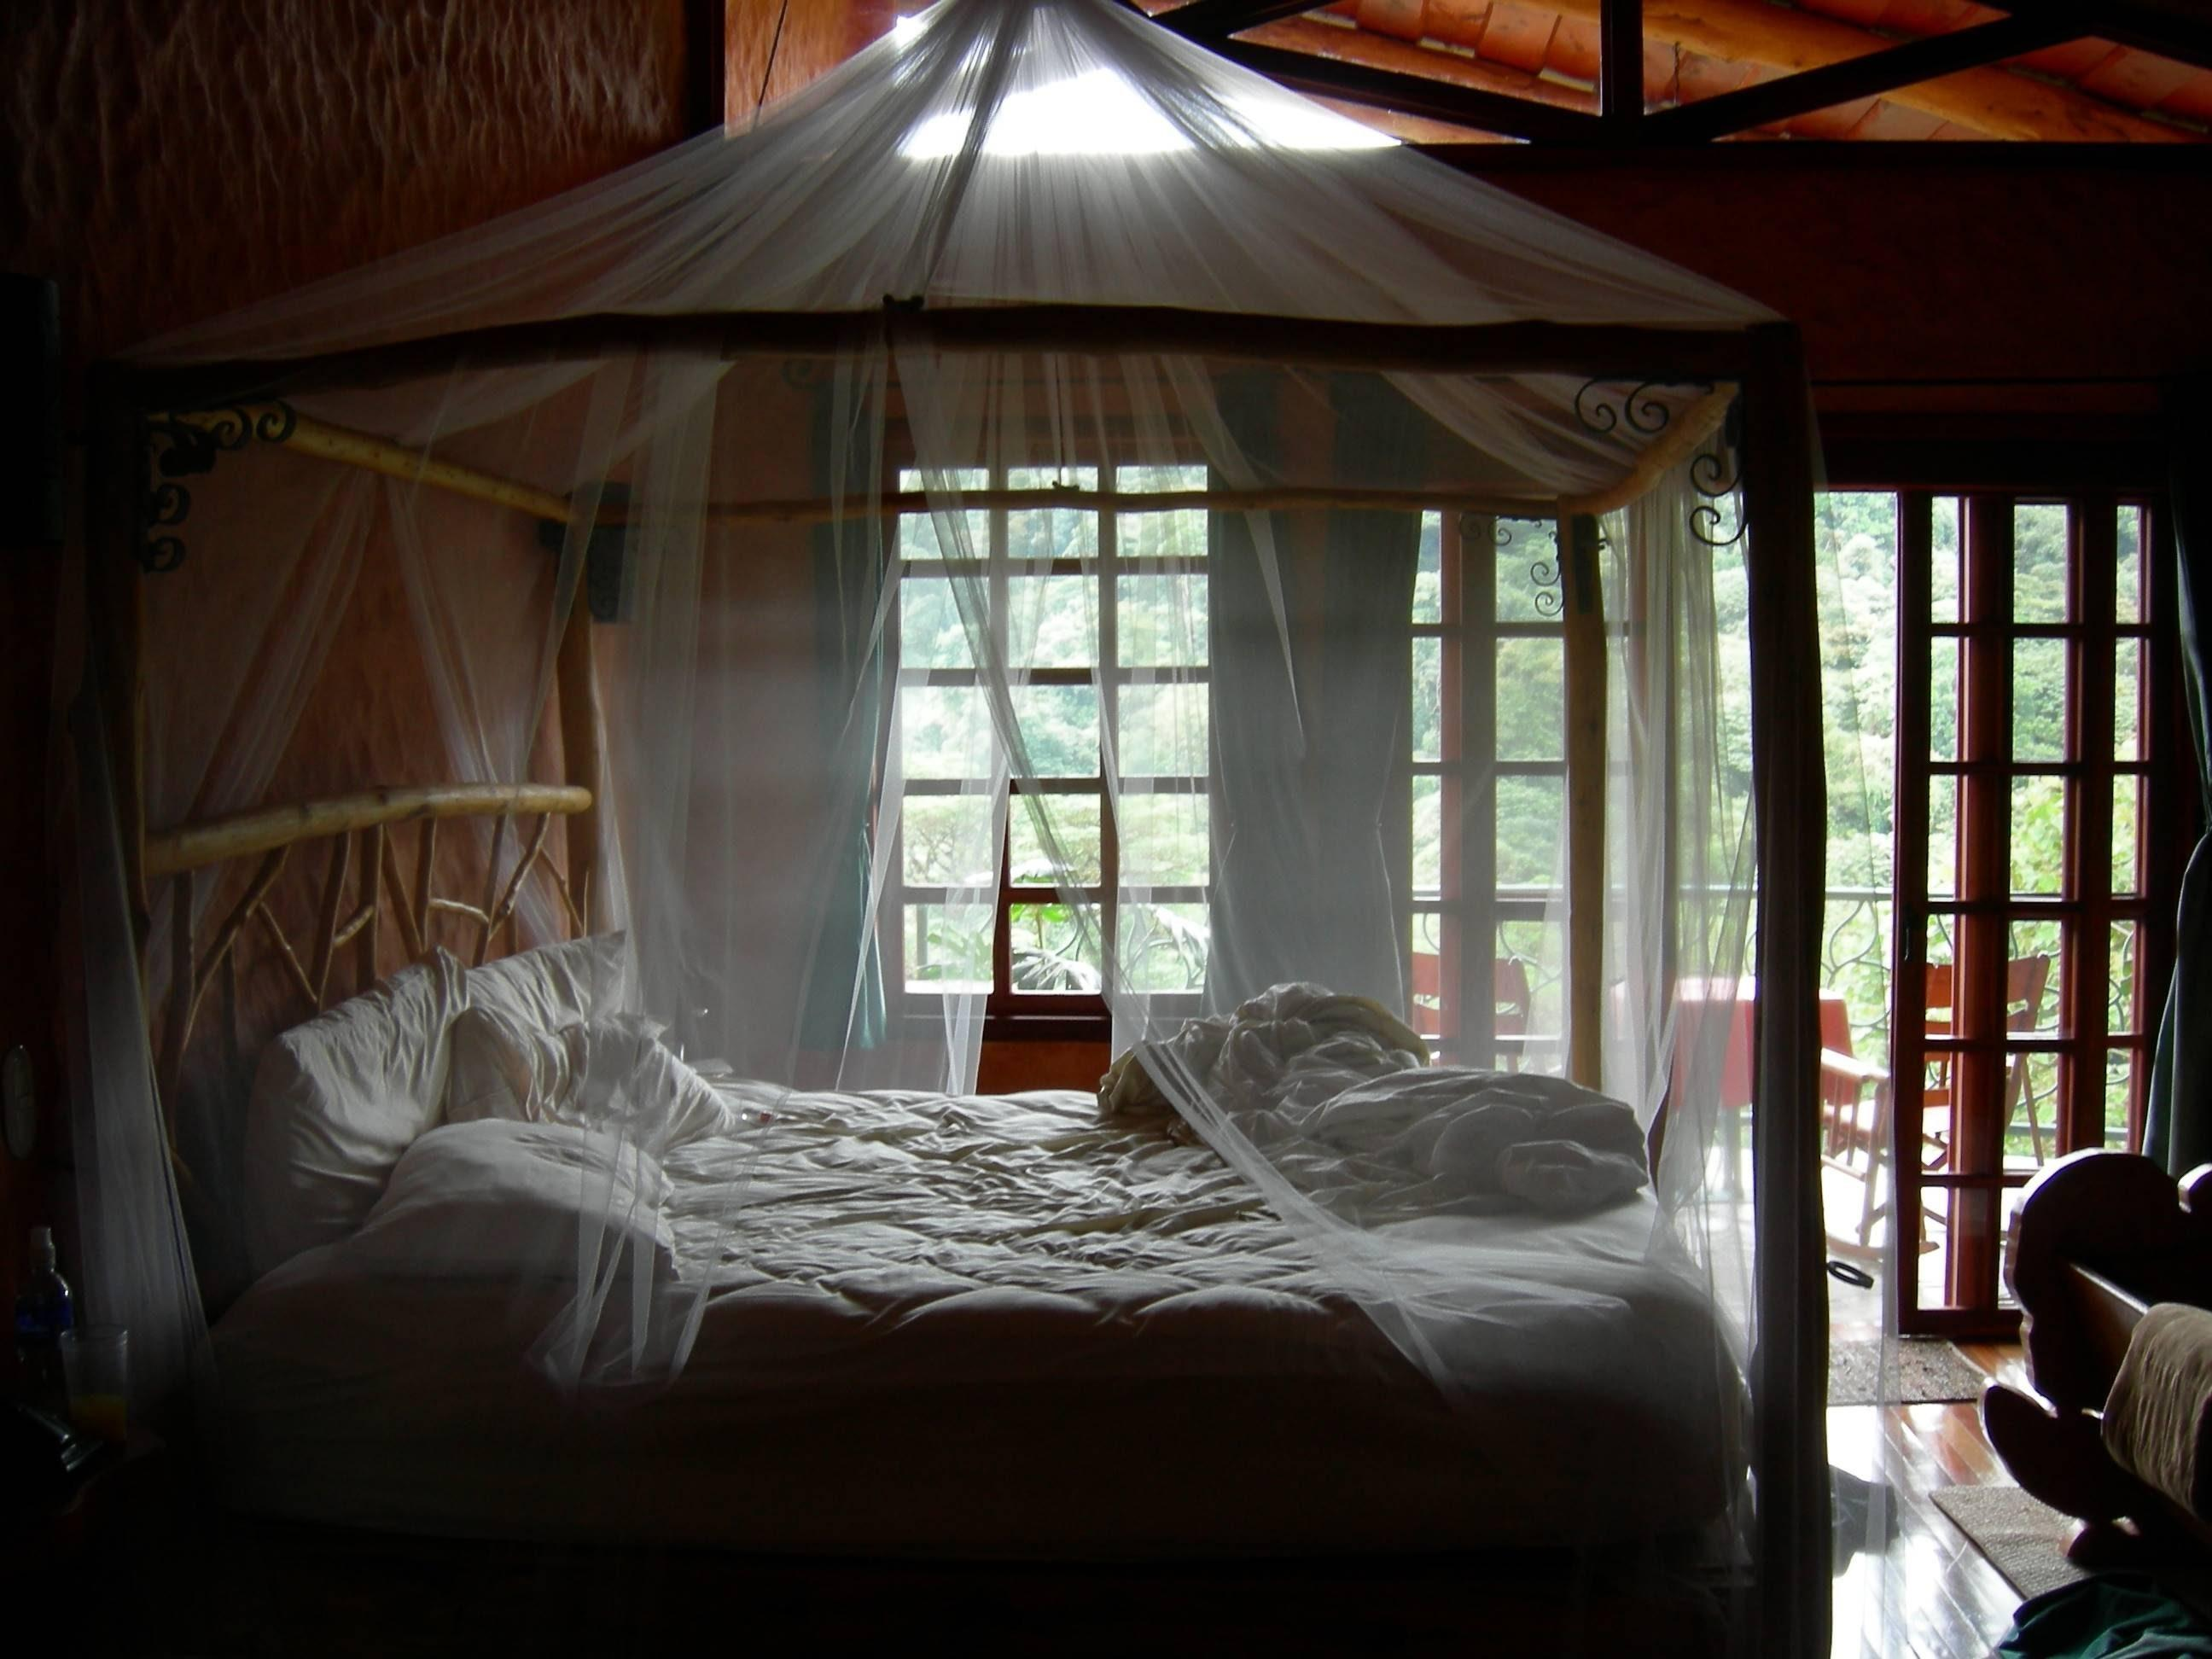 Bedroom Extraordinary Canopy Bed Ideas Vie Decor Then